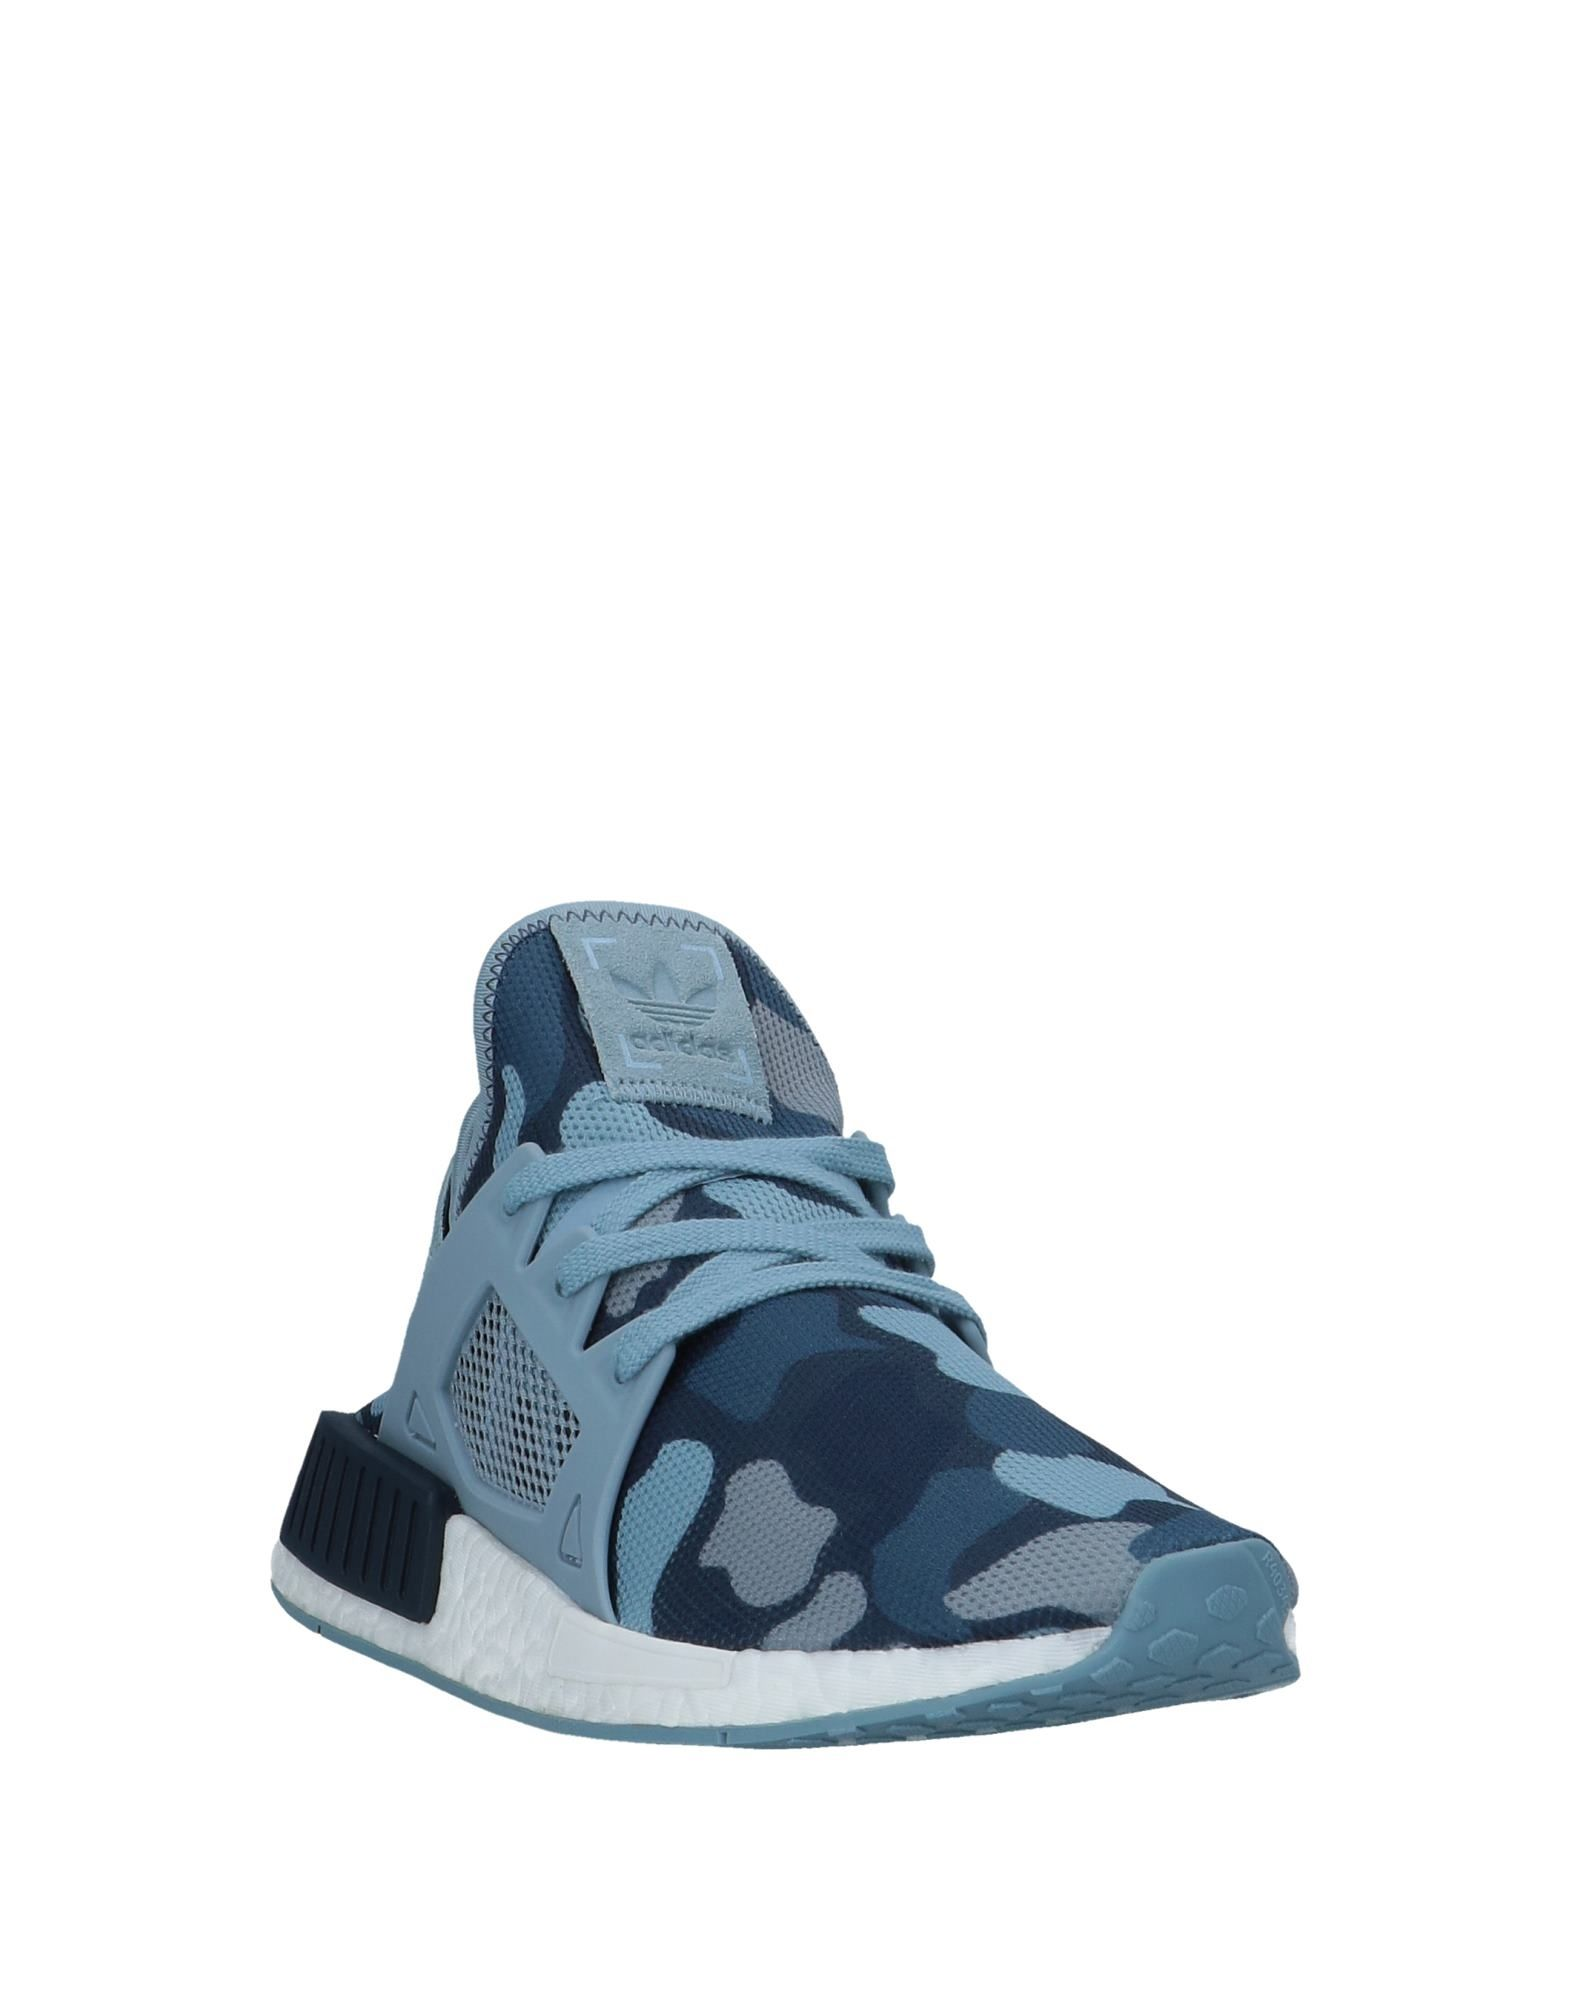 Adidas Adidas Adidas Originals Sneakers - Women Adidas Originals Sneakers online on  Canada - 11544752VM ec3b04